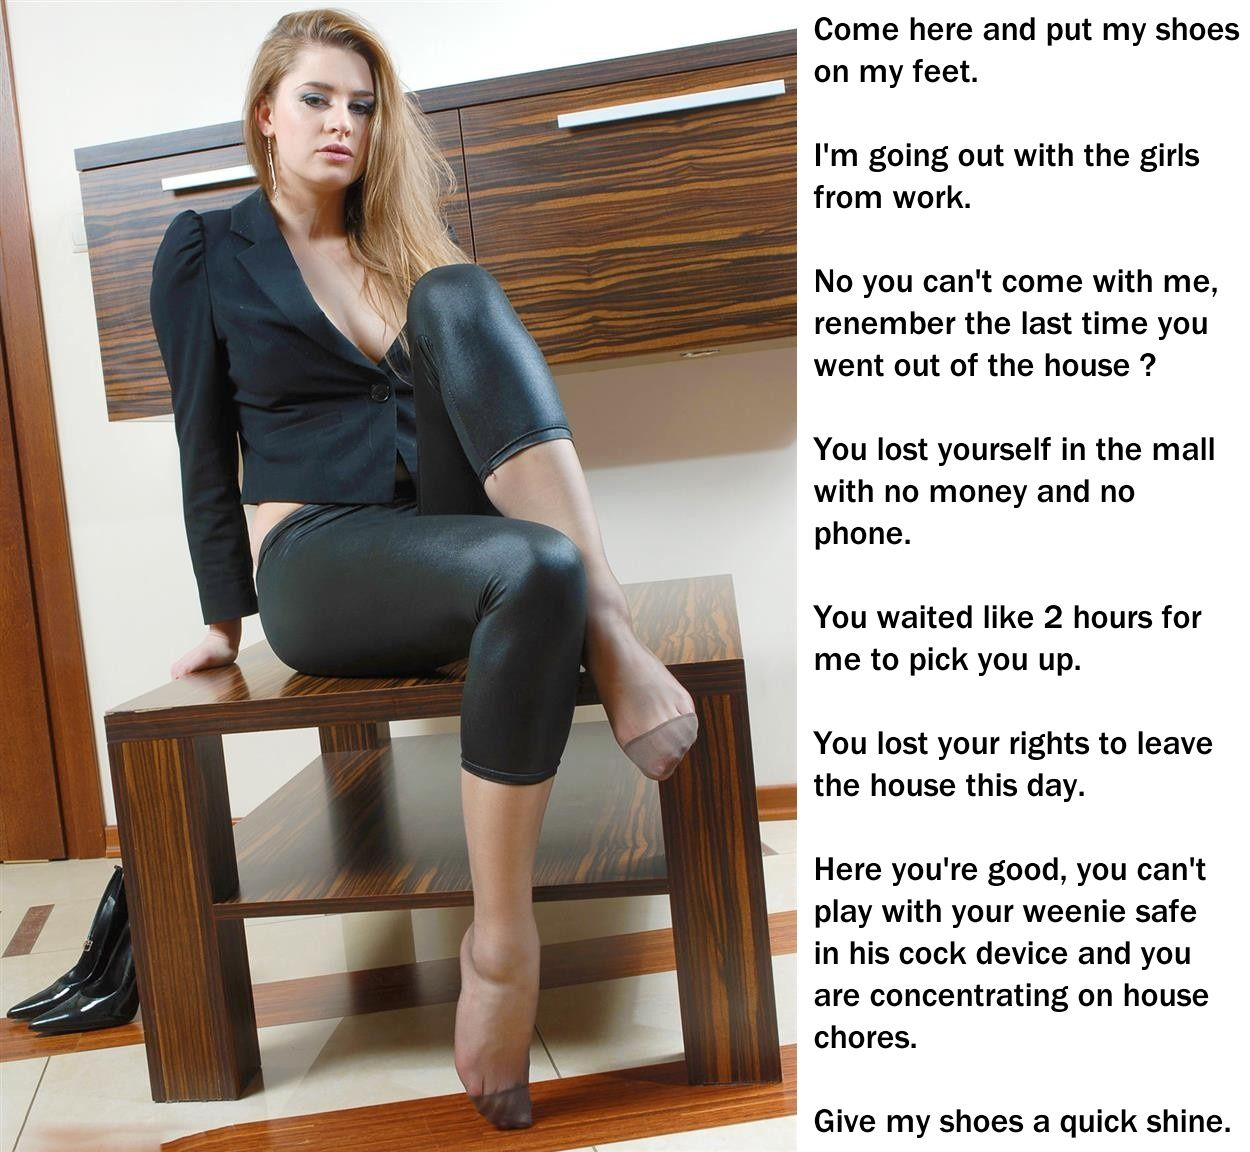 Pussy Worship Captions Top pinpat on fd captions | pinterest | captions, submissive and nice